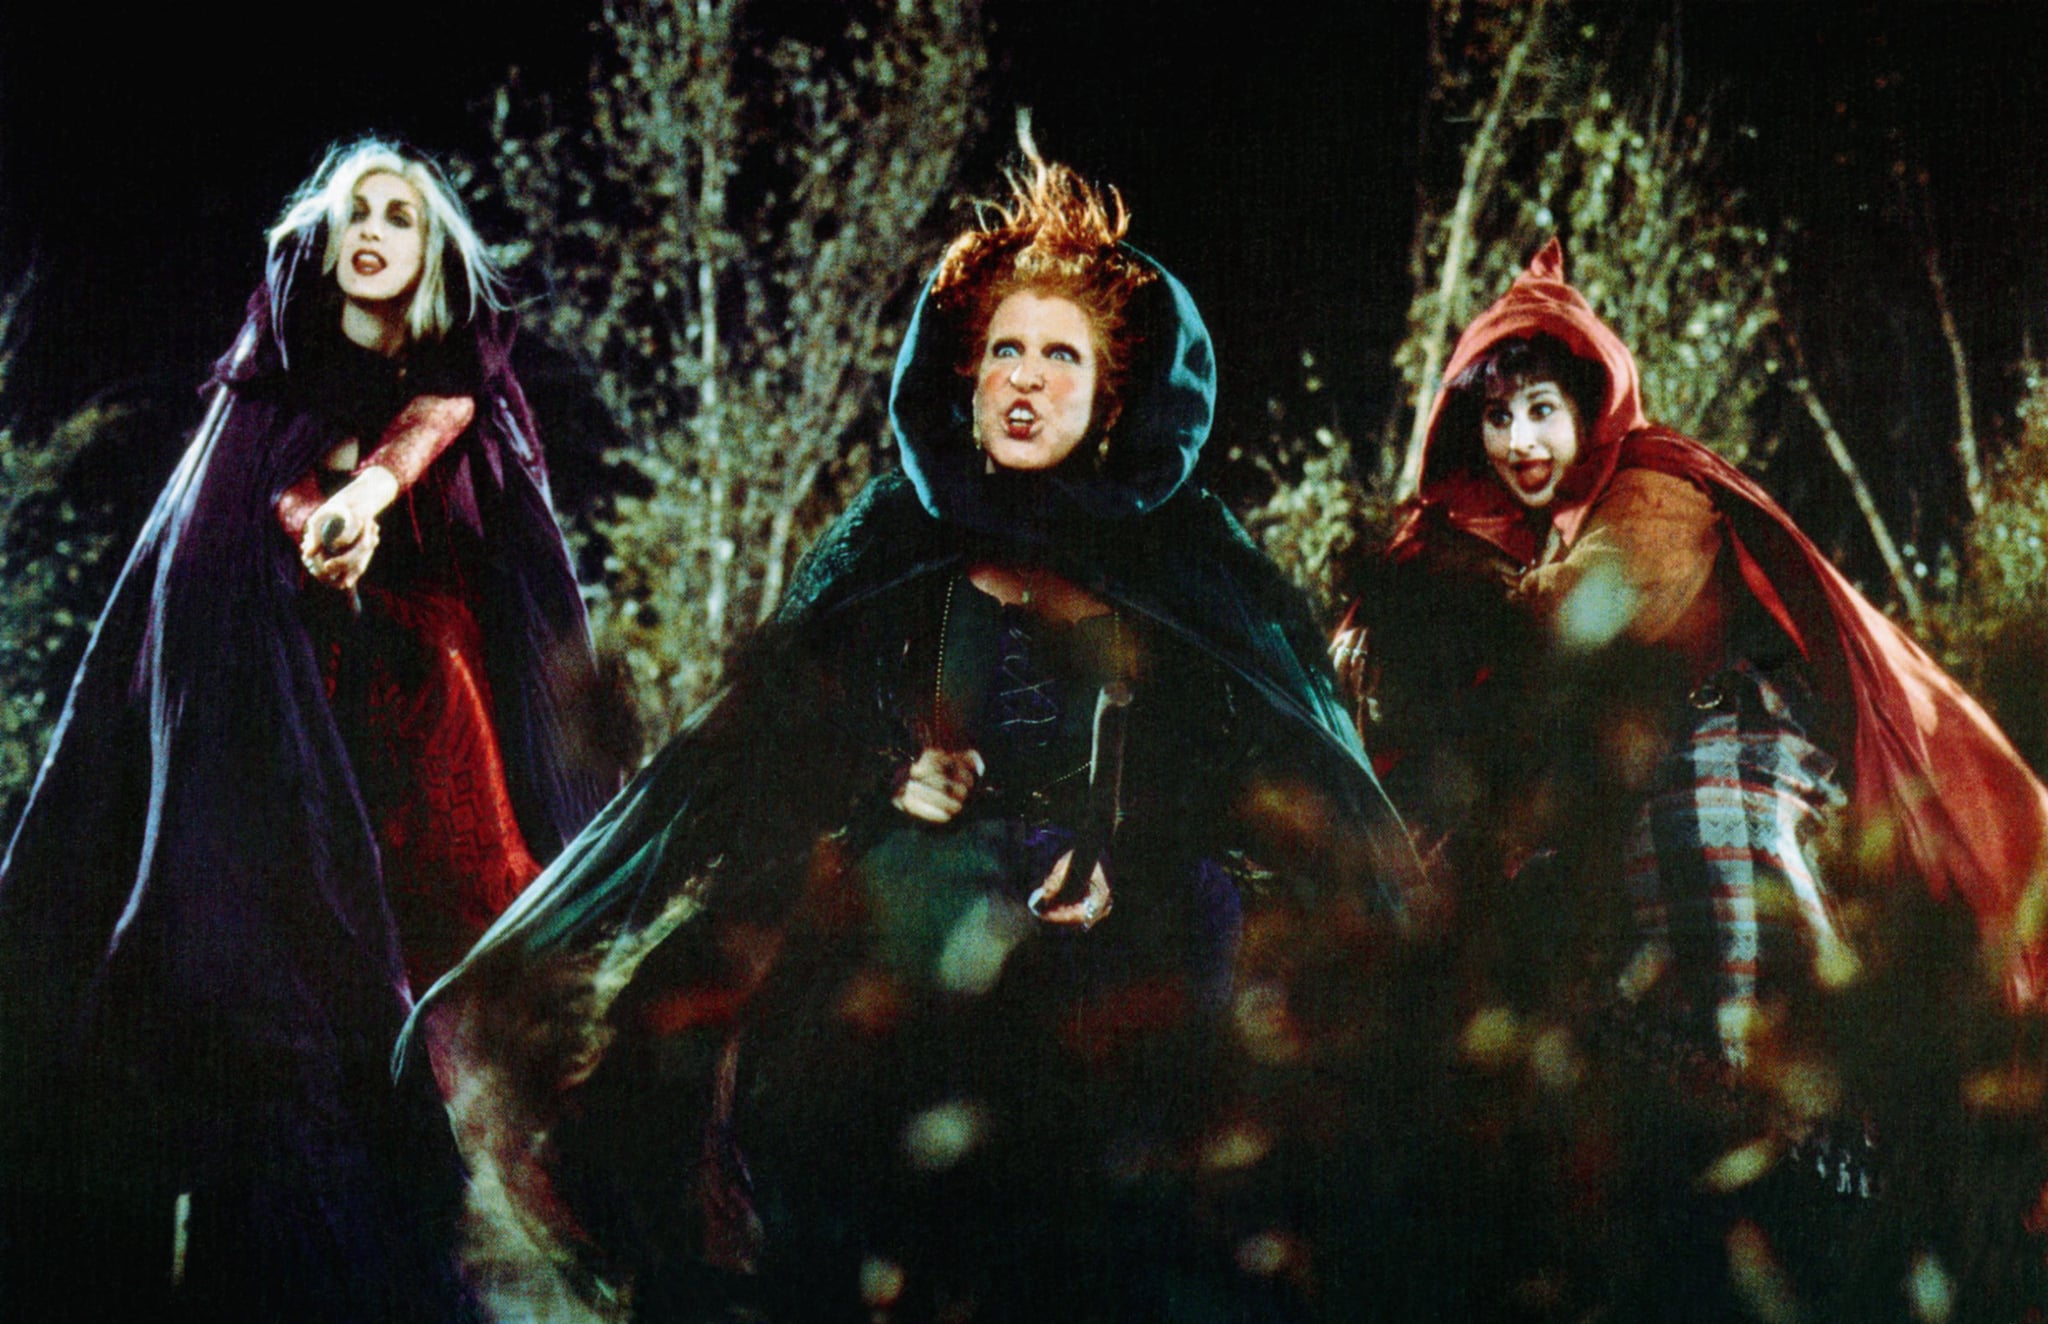 HOCUS POCUS, from left: Sarah Jessica Parker, Bette Midler, Kathy Najimy, 1993,  Buena Vista/courtesy Everett Collection